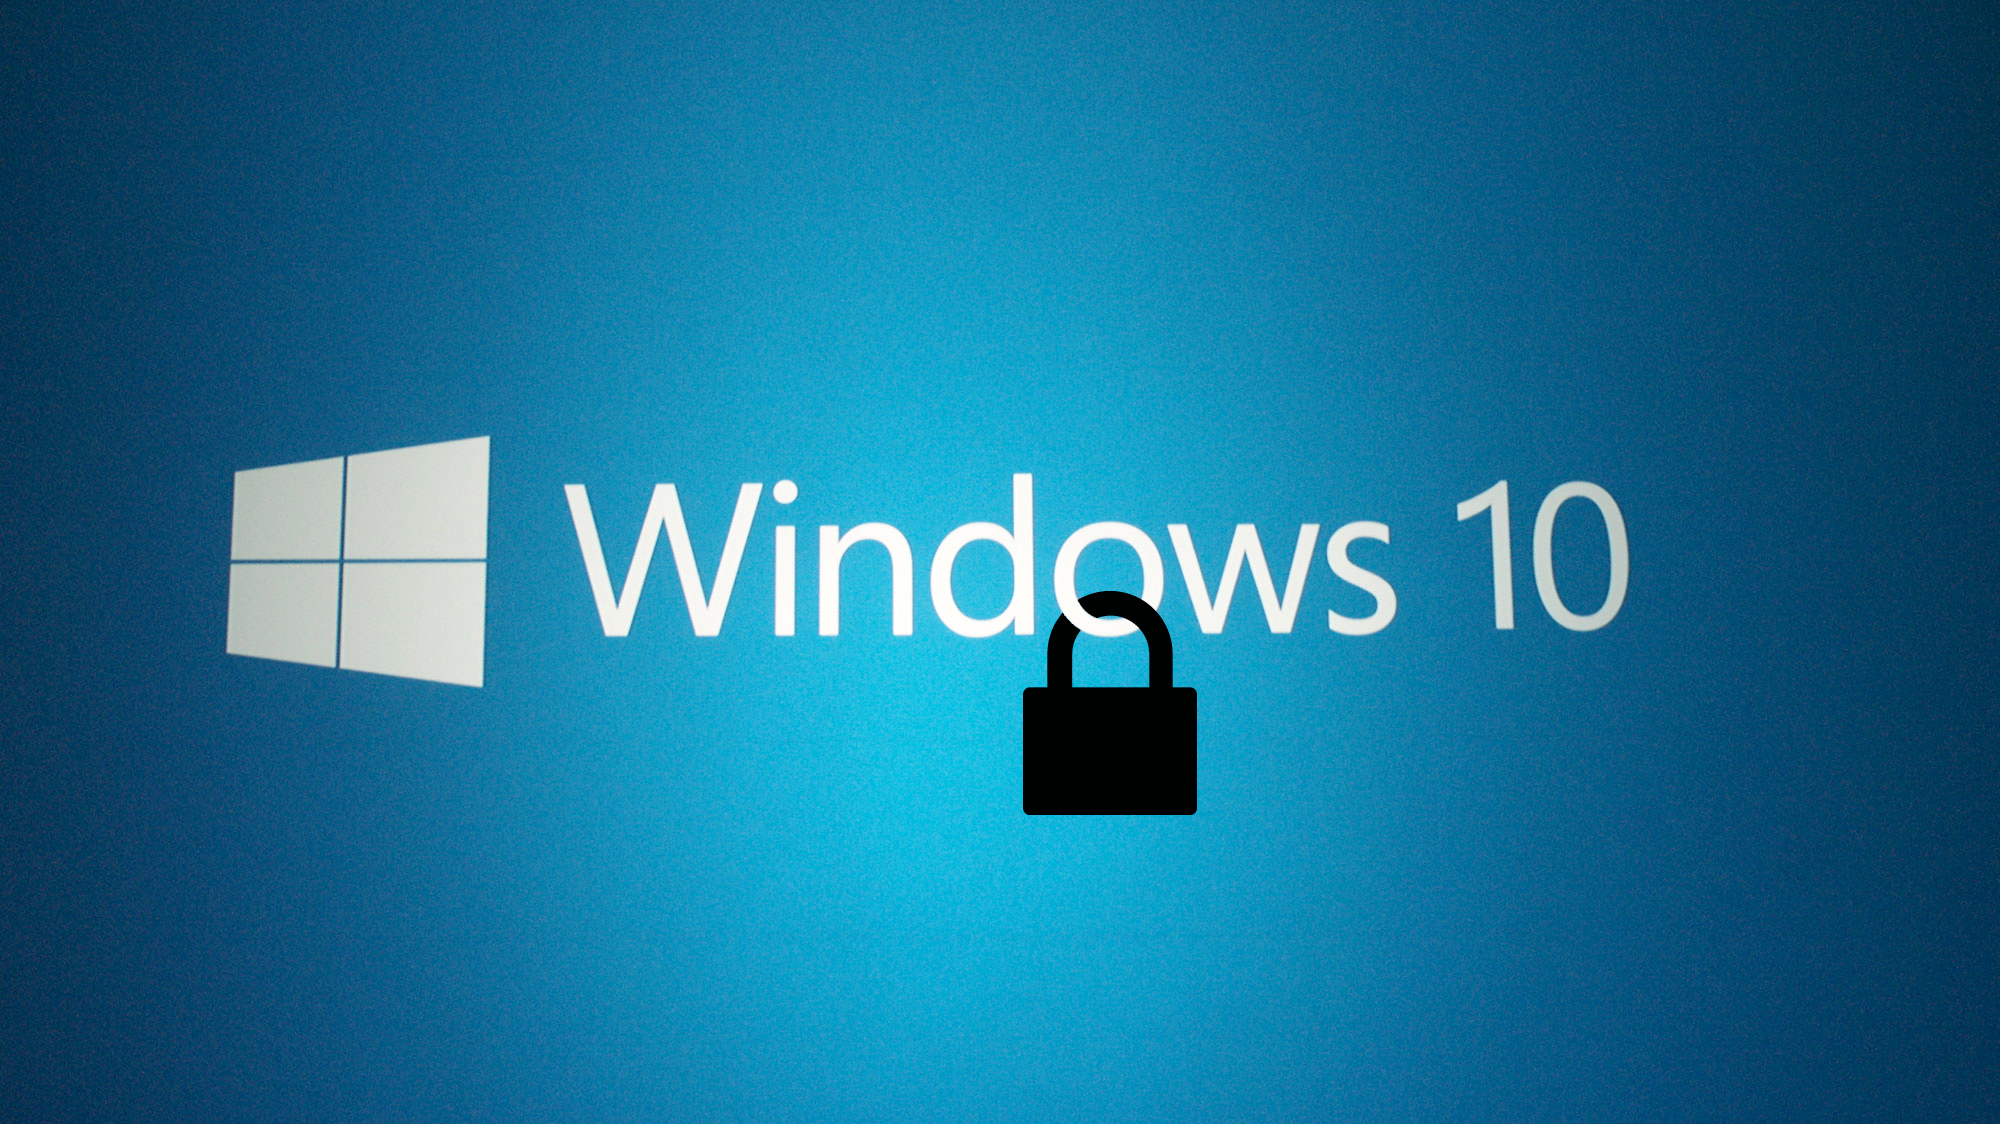 Relying On Windows 10 Security Is Risky For Business